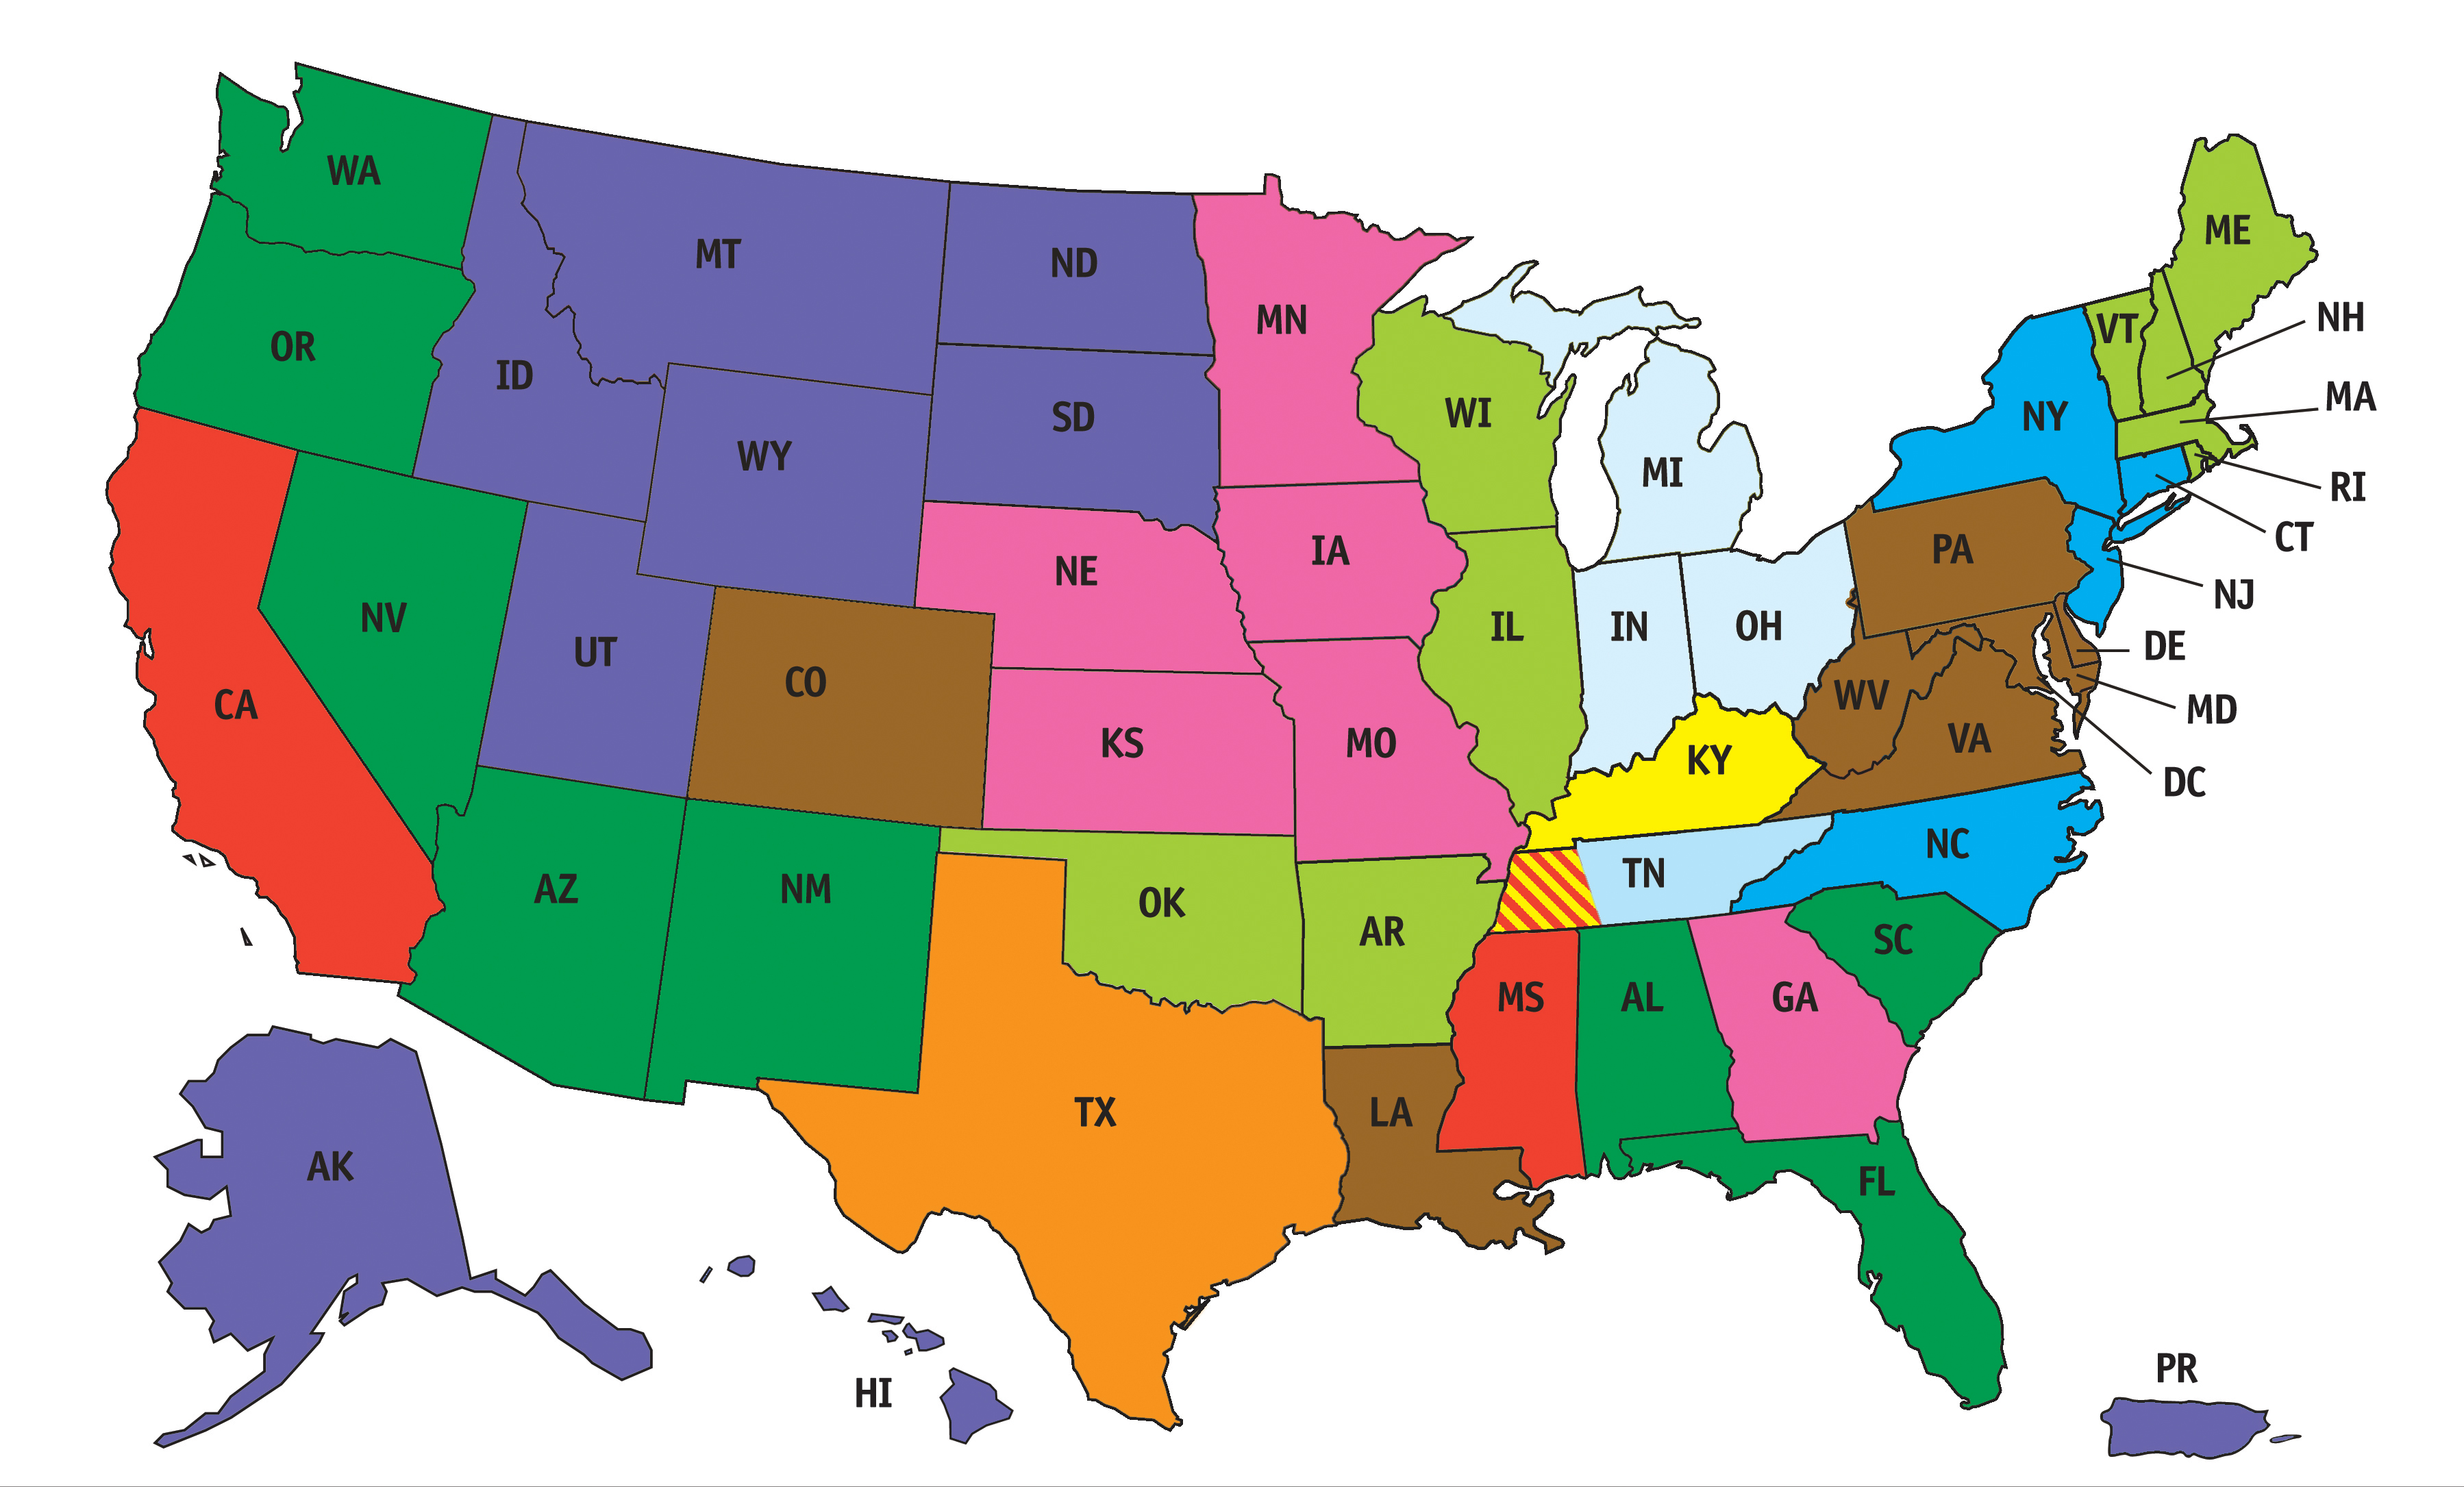 A colored map of the united states.